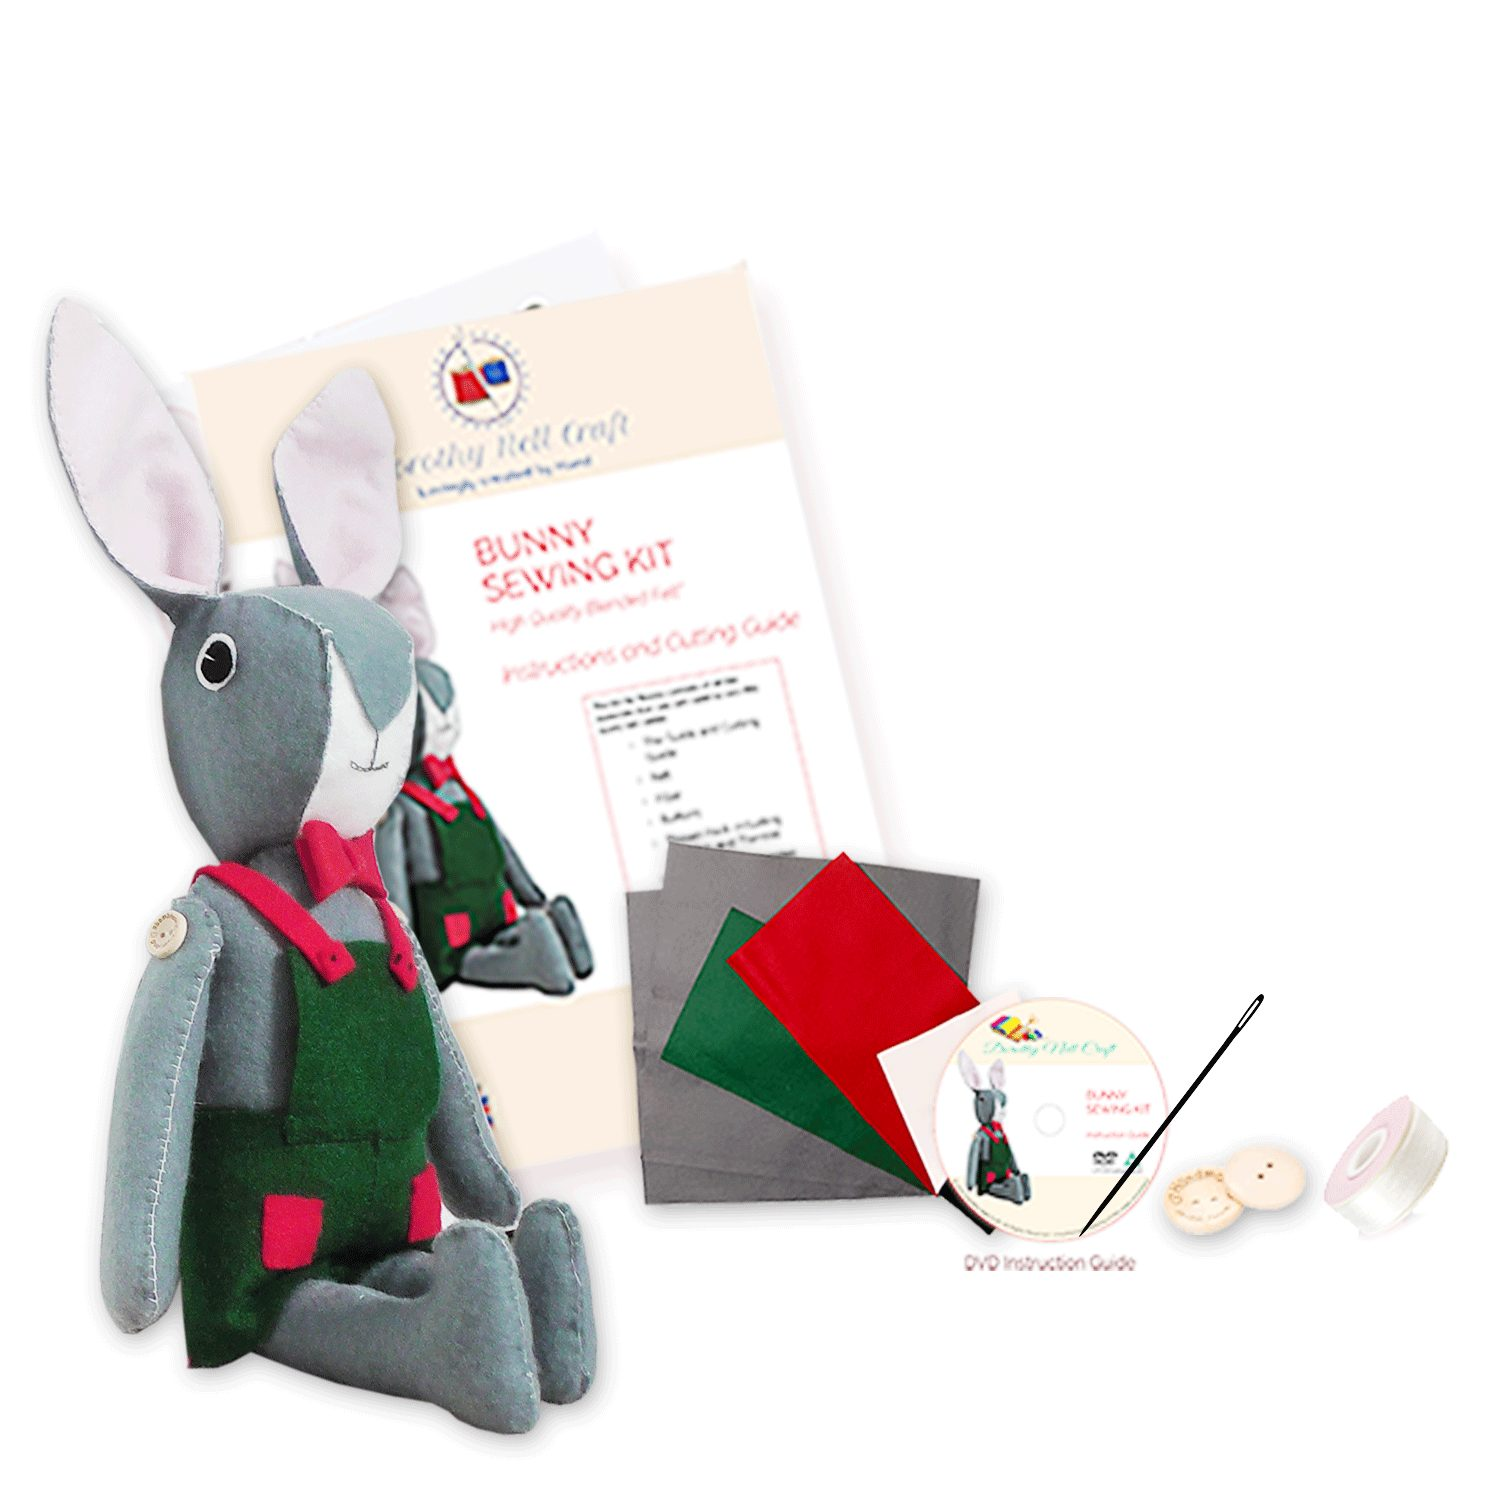 Bunny Sewing Kit